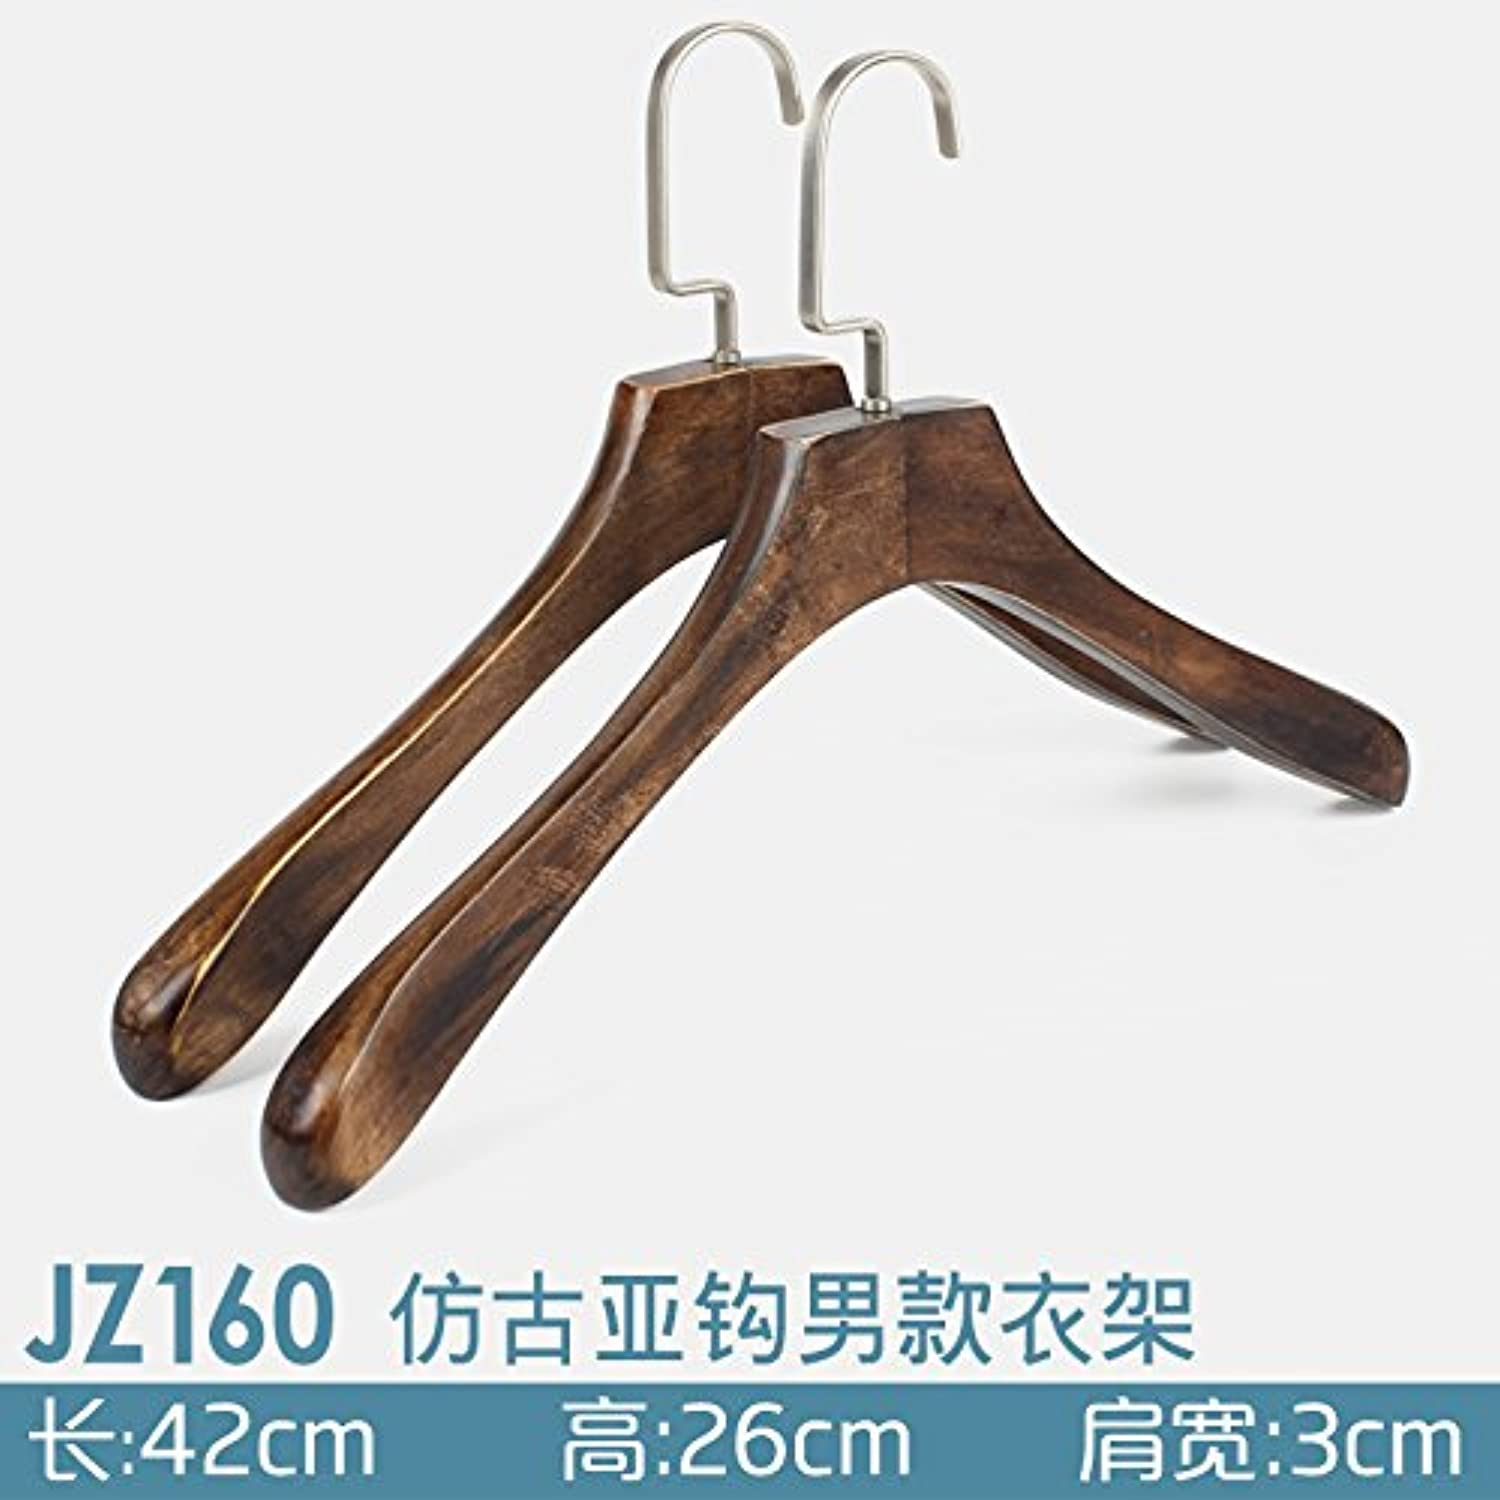 U-emember Home Suits Non-Slip Wooden Coat Hangers Wooden Poles Adult Clothing And Non-Marking Solid Wood Hangers Coat Hanger, 20, orange Jz160-4333 Thick 2.9